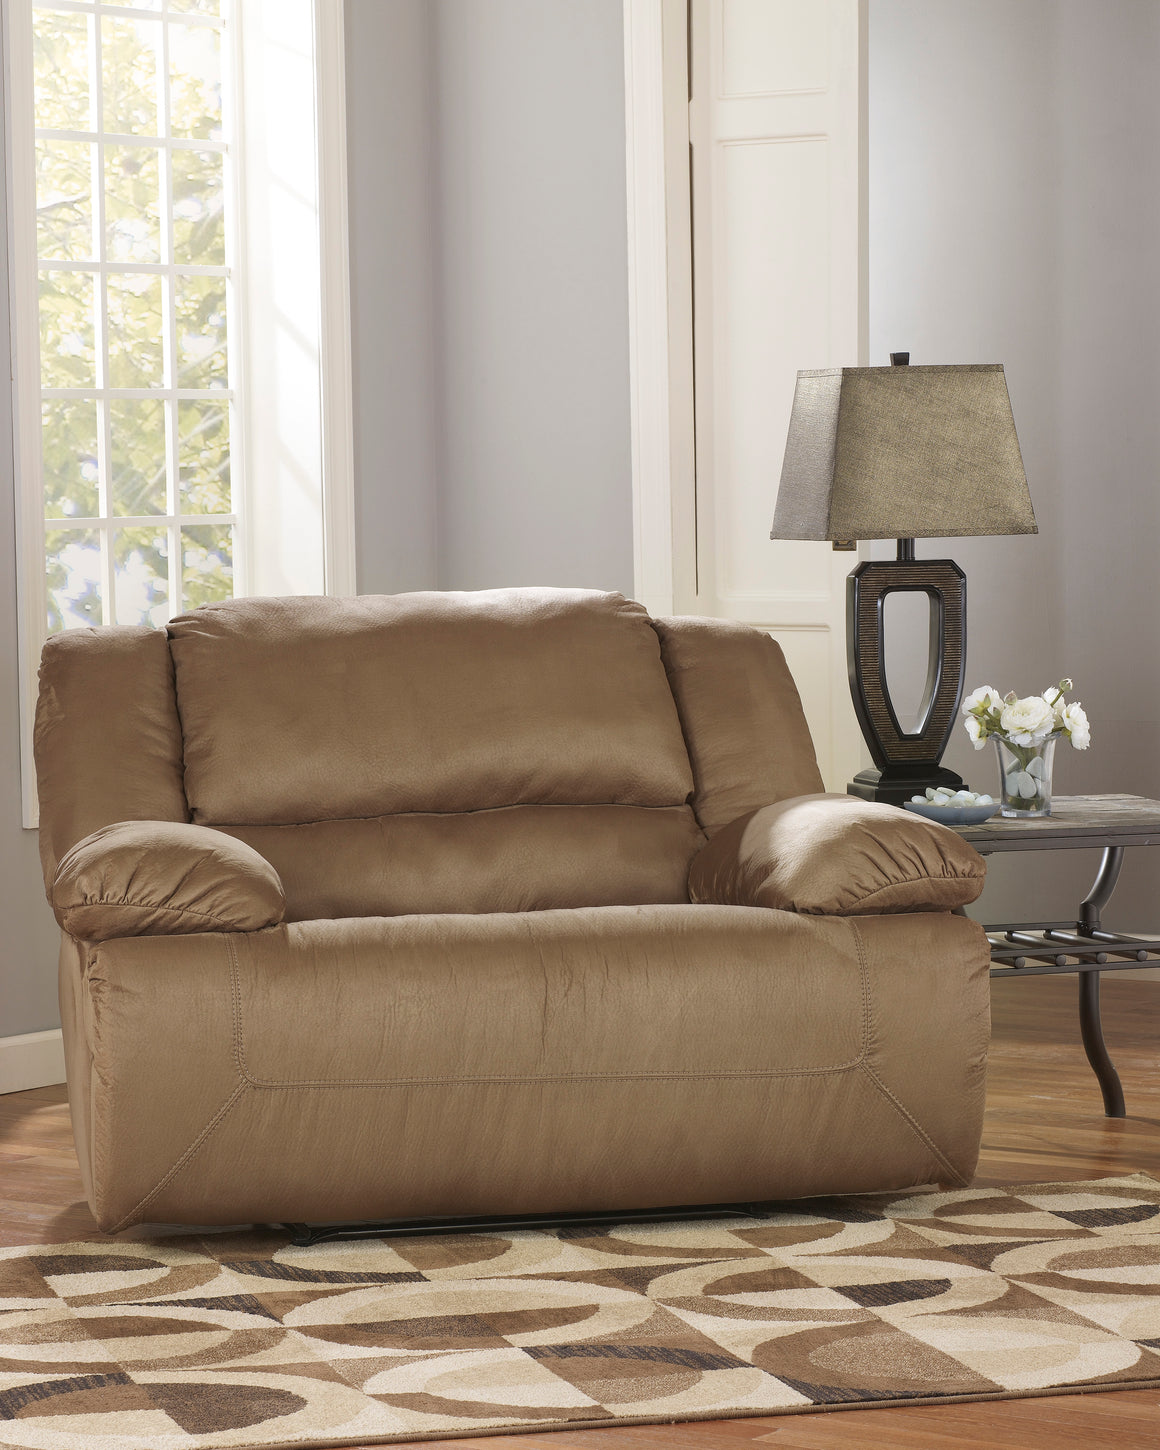 Ashley Furniture Signature Design - Hogan Oversized Recliner - Mocha